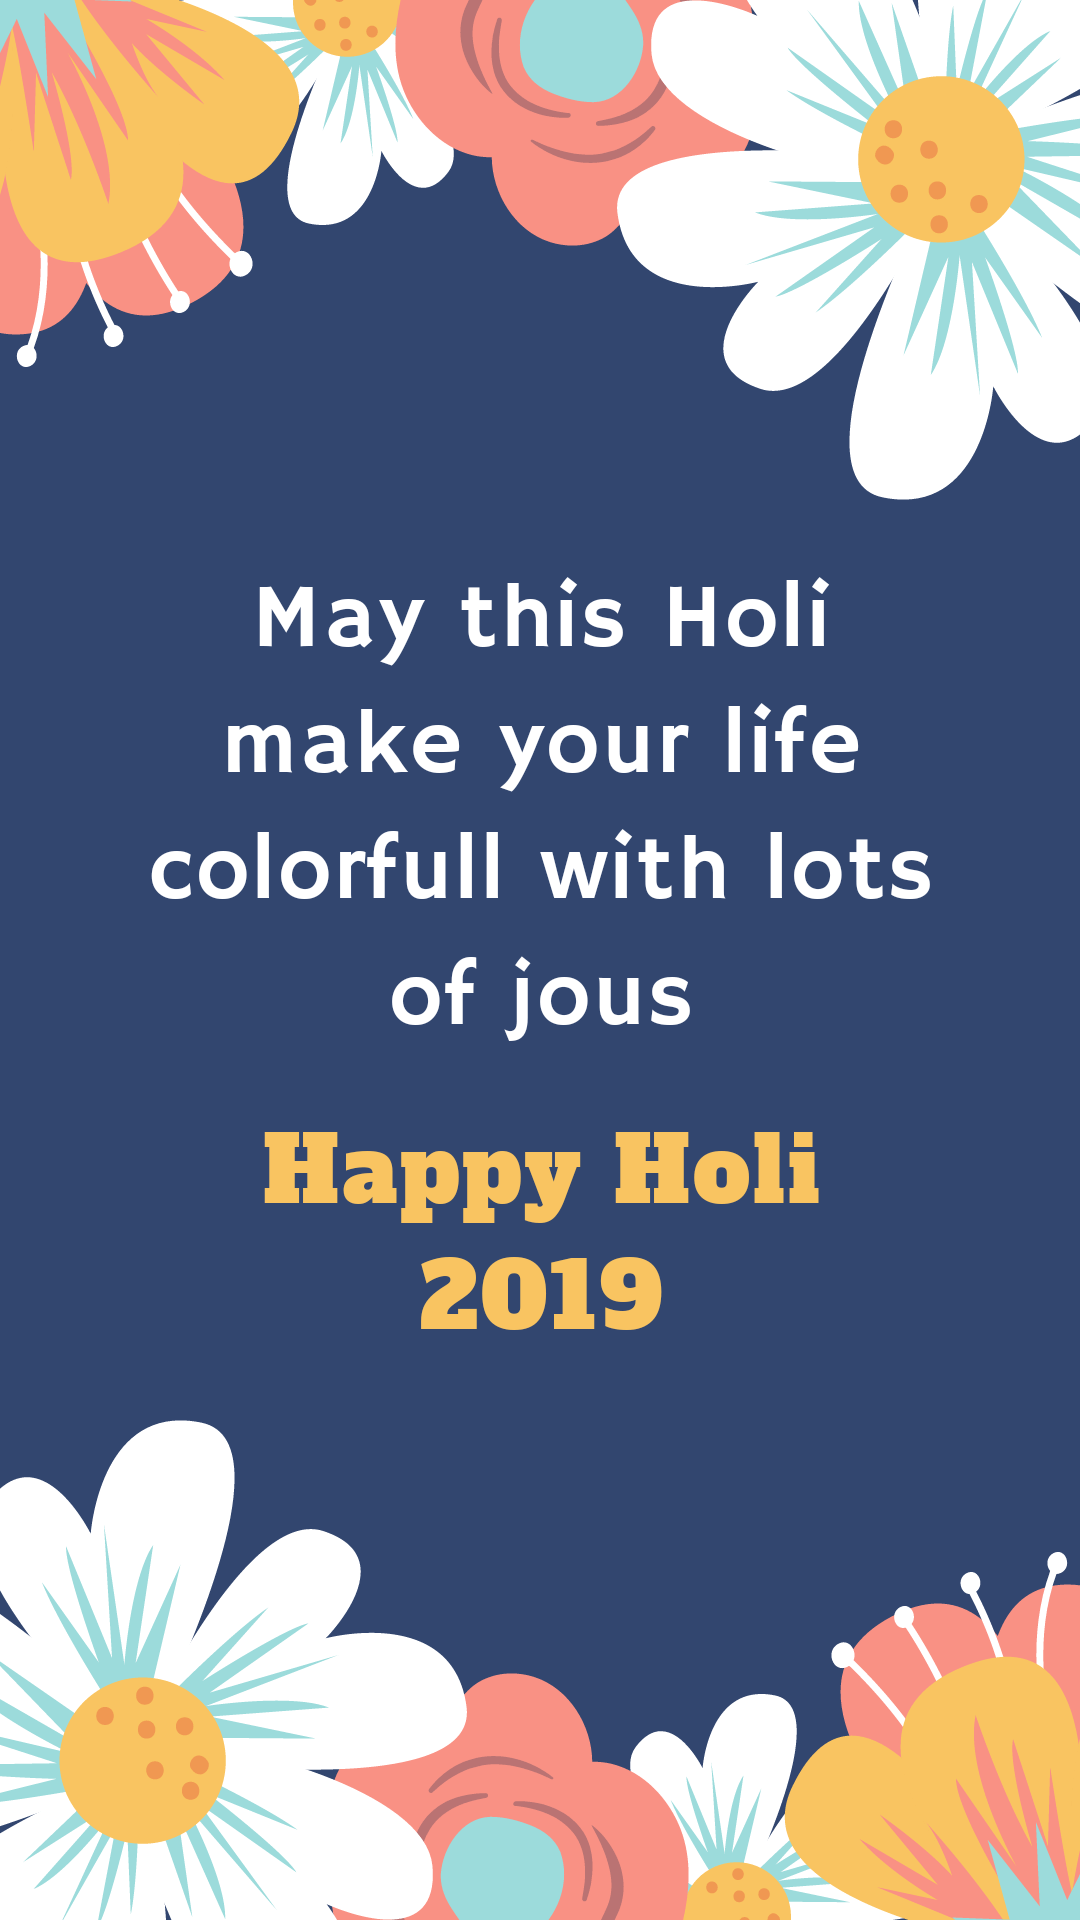 Happy Holi Wishes Whatsapp Good Morning Status In English 1080x1920 Download Hd Wallpaper Wallpapertip